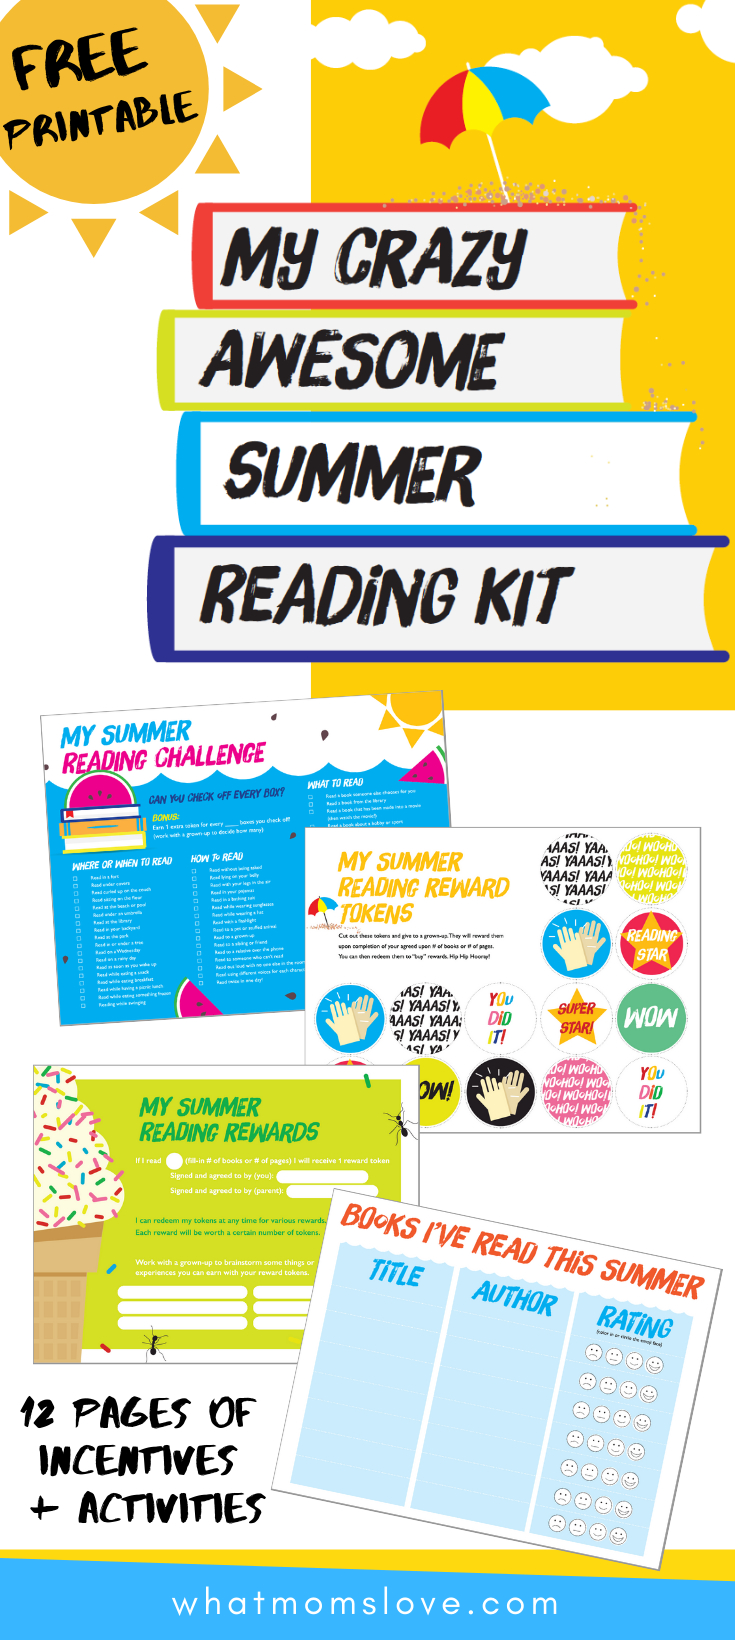 How To Get Your Kids To Read This Summer (With Free Printable Summer - Free Printable Kindergarten Level Books